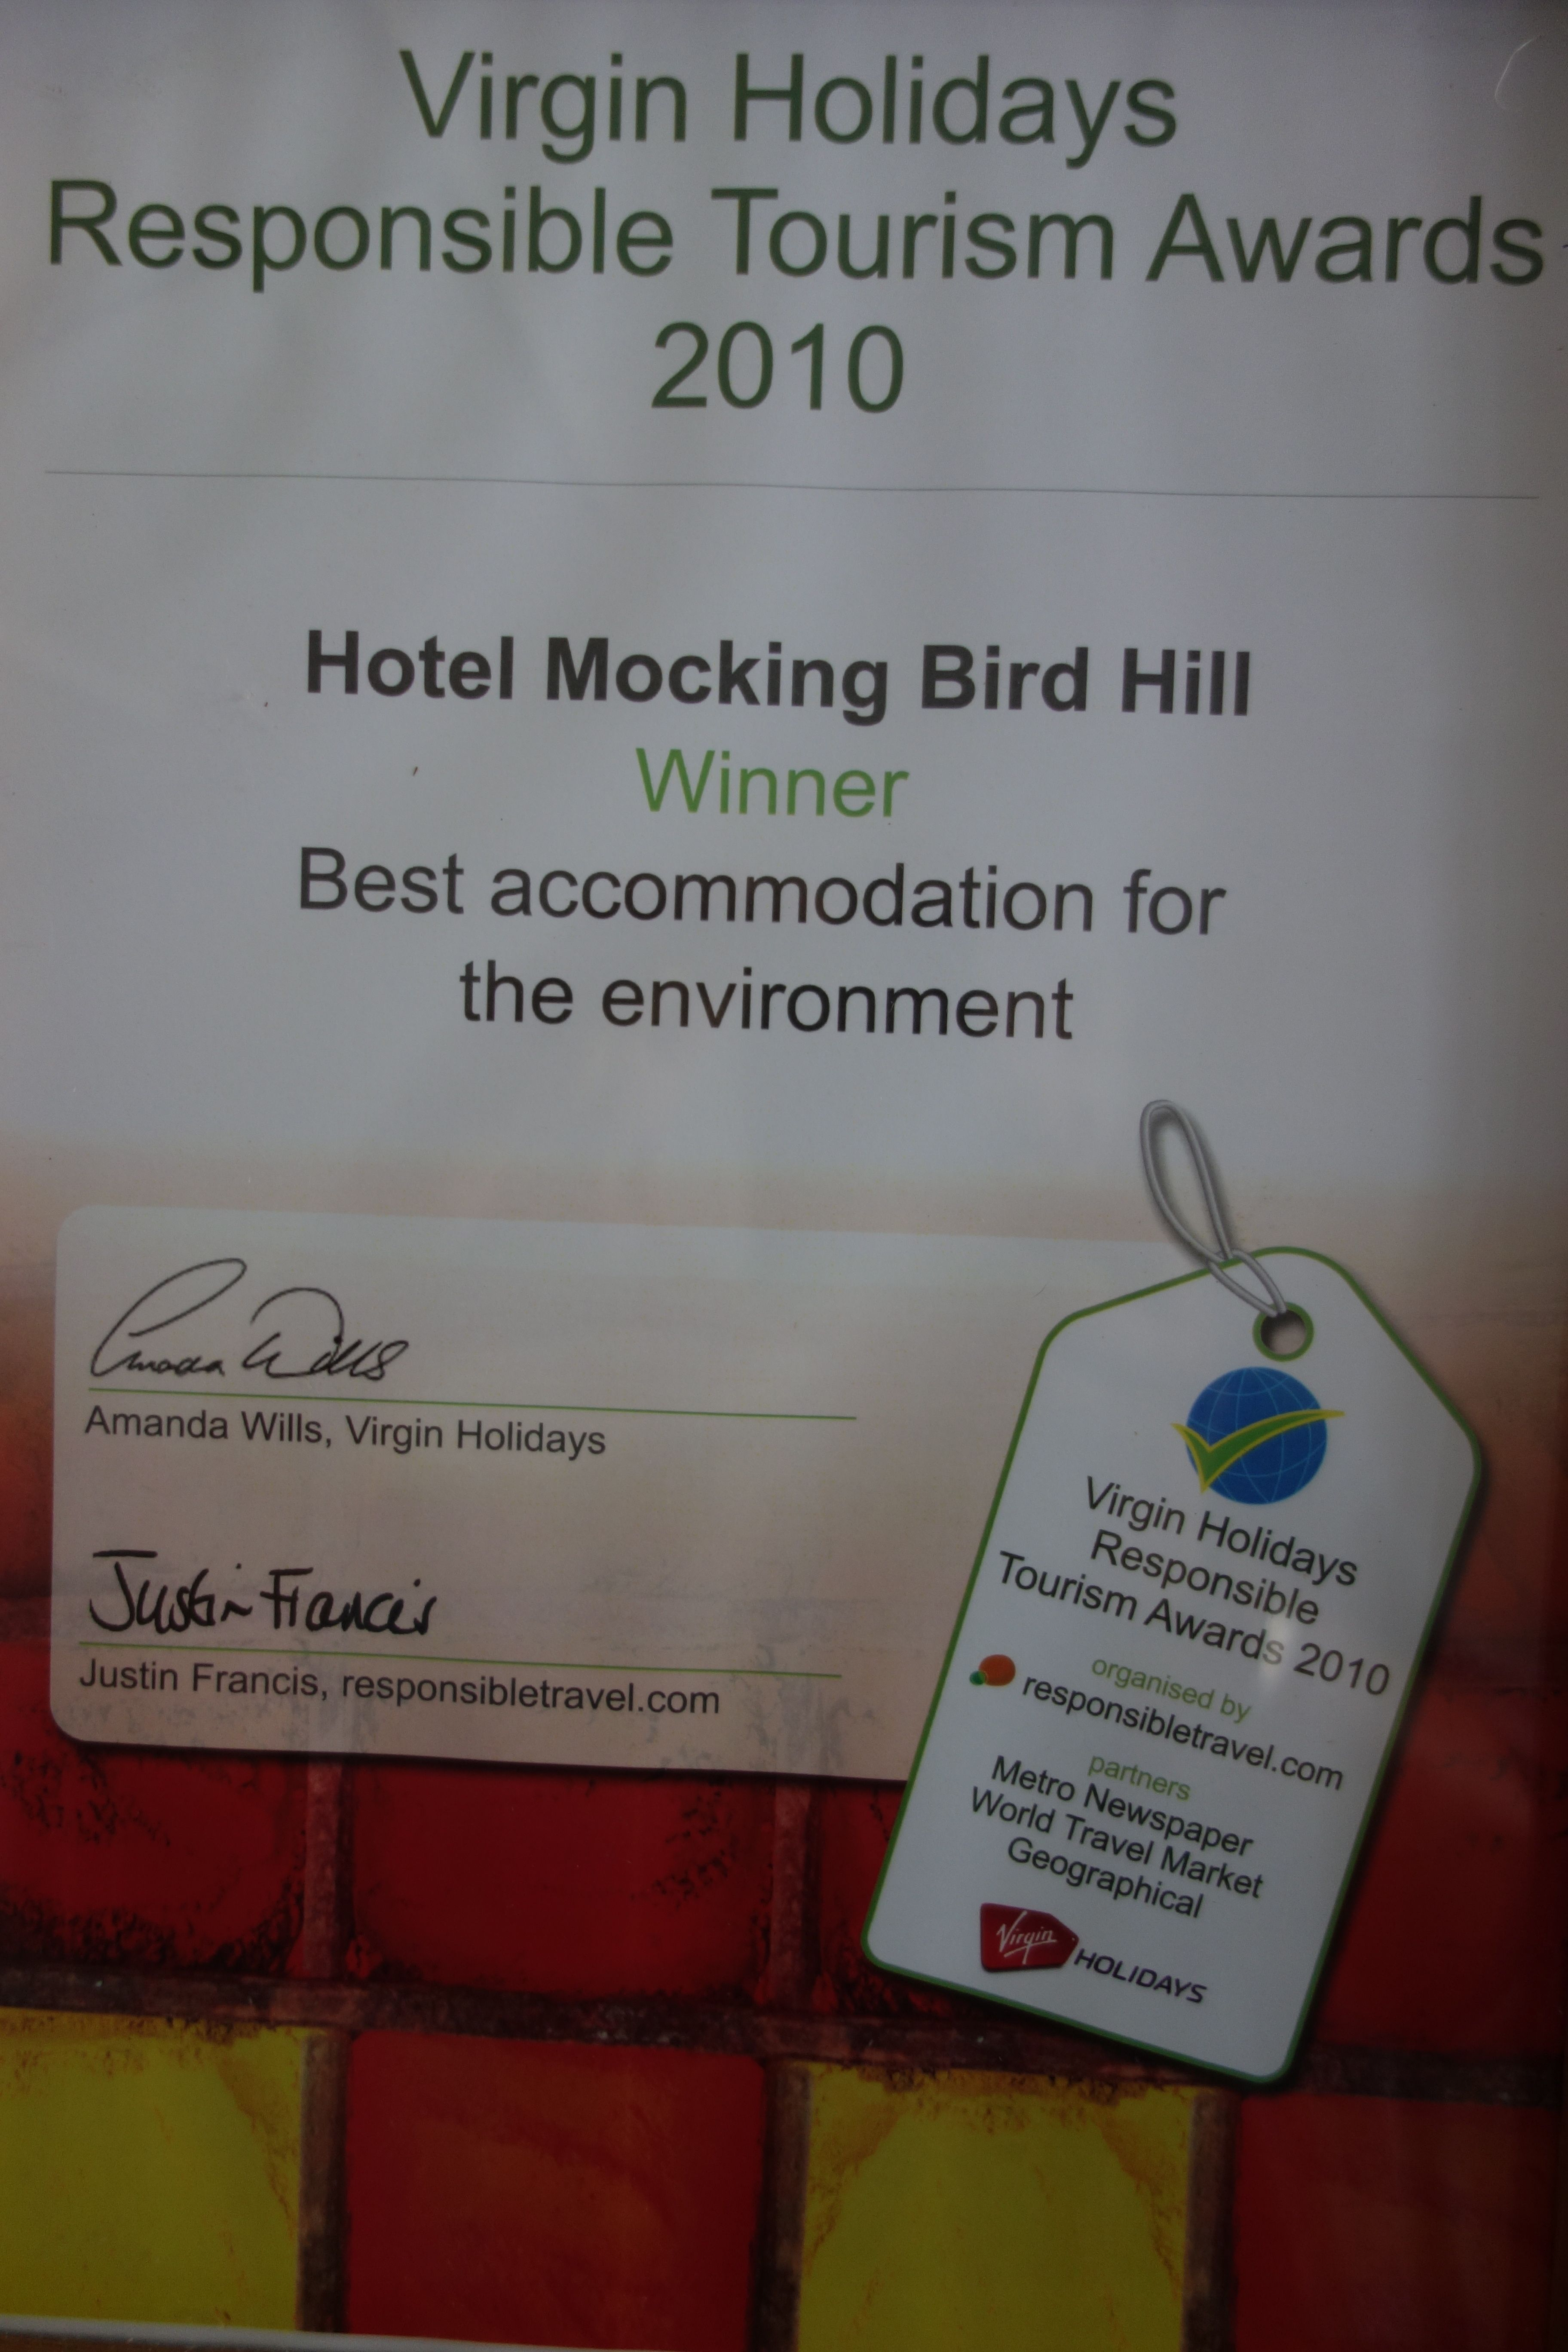 In 2010 #VirginHolidays and #Responsible Travel selected #HotelMockingBirdHill as the best accommodation for the environment